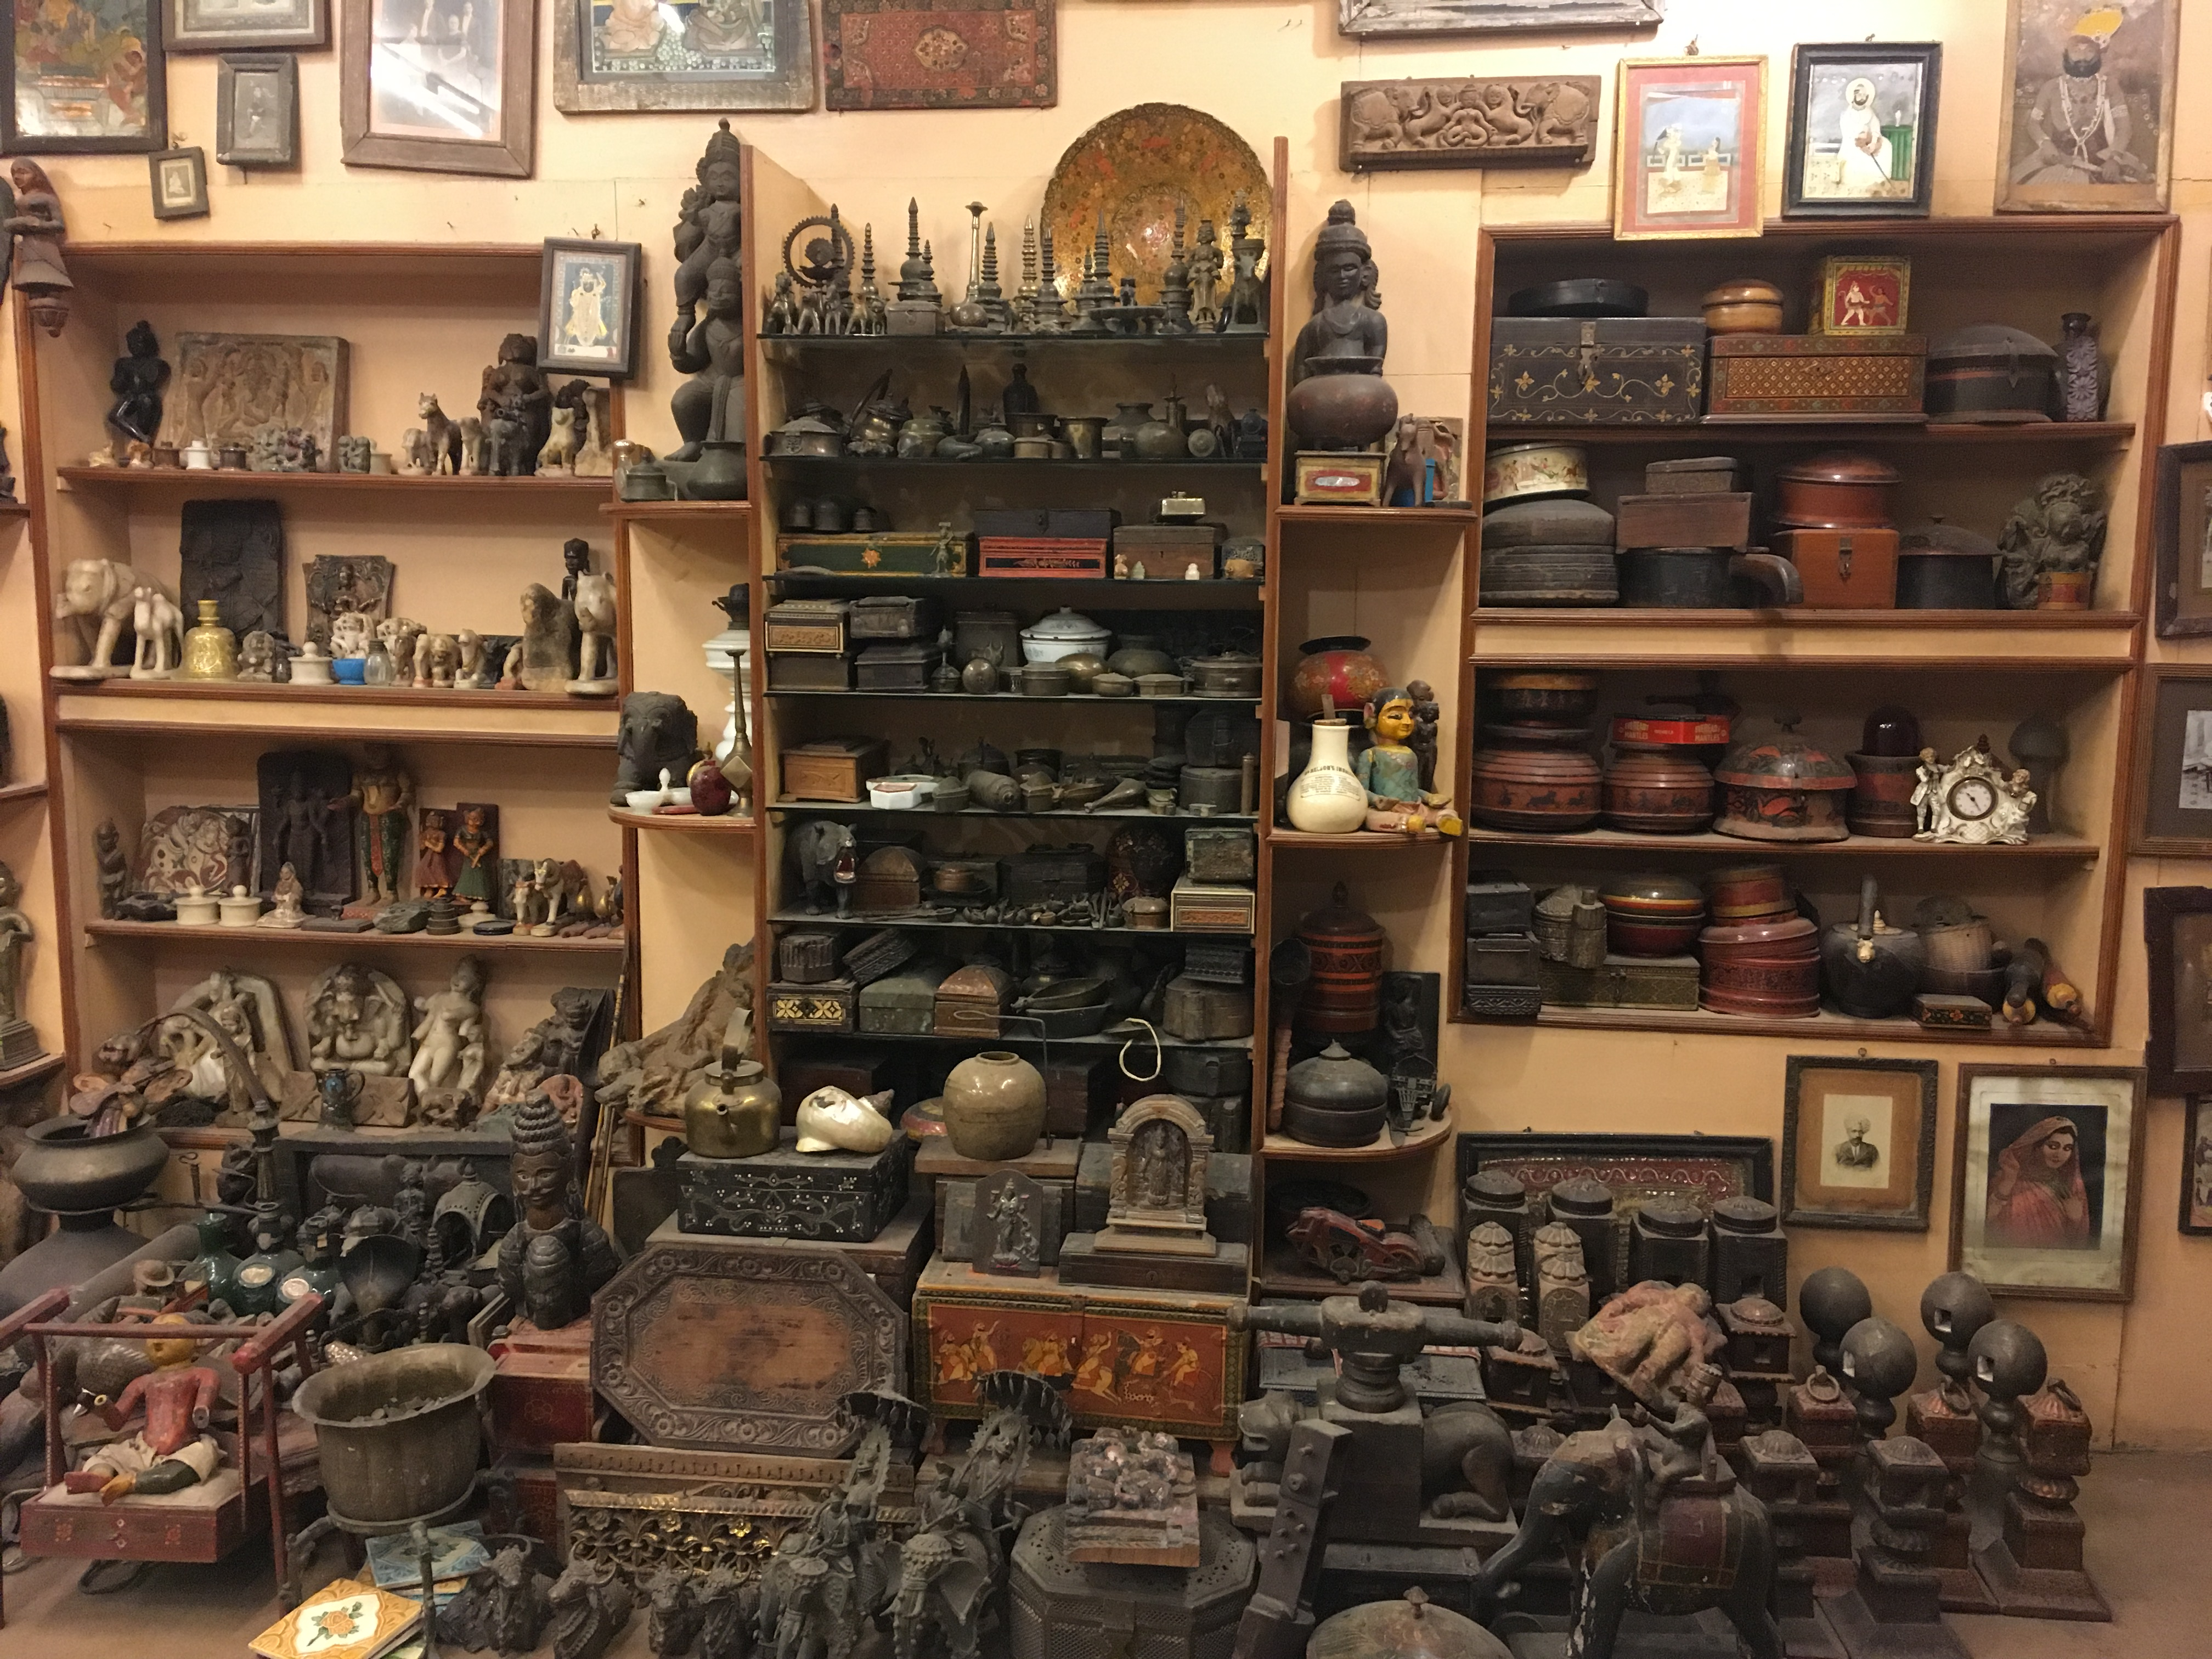 Some of the most popular antiquities that the city has to offer its tourists are the small trinkets from times gone by, like age-old key chains, small jewelry boxes adorned with semi-precious gemstones, marble carved statues and sculptures, etc. (Meaww Photos)